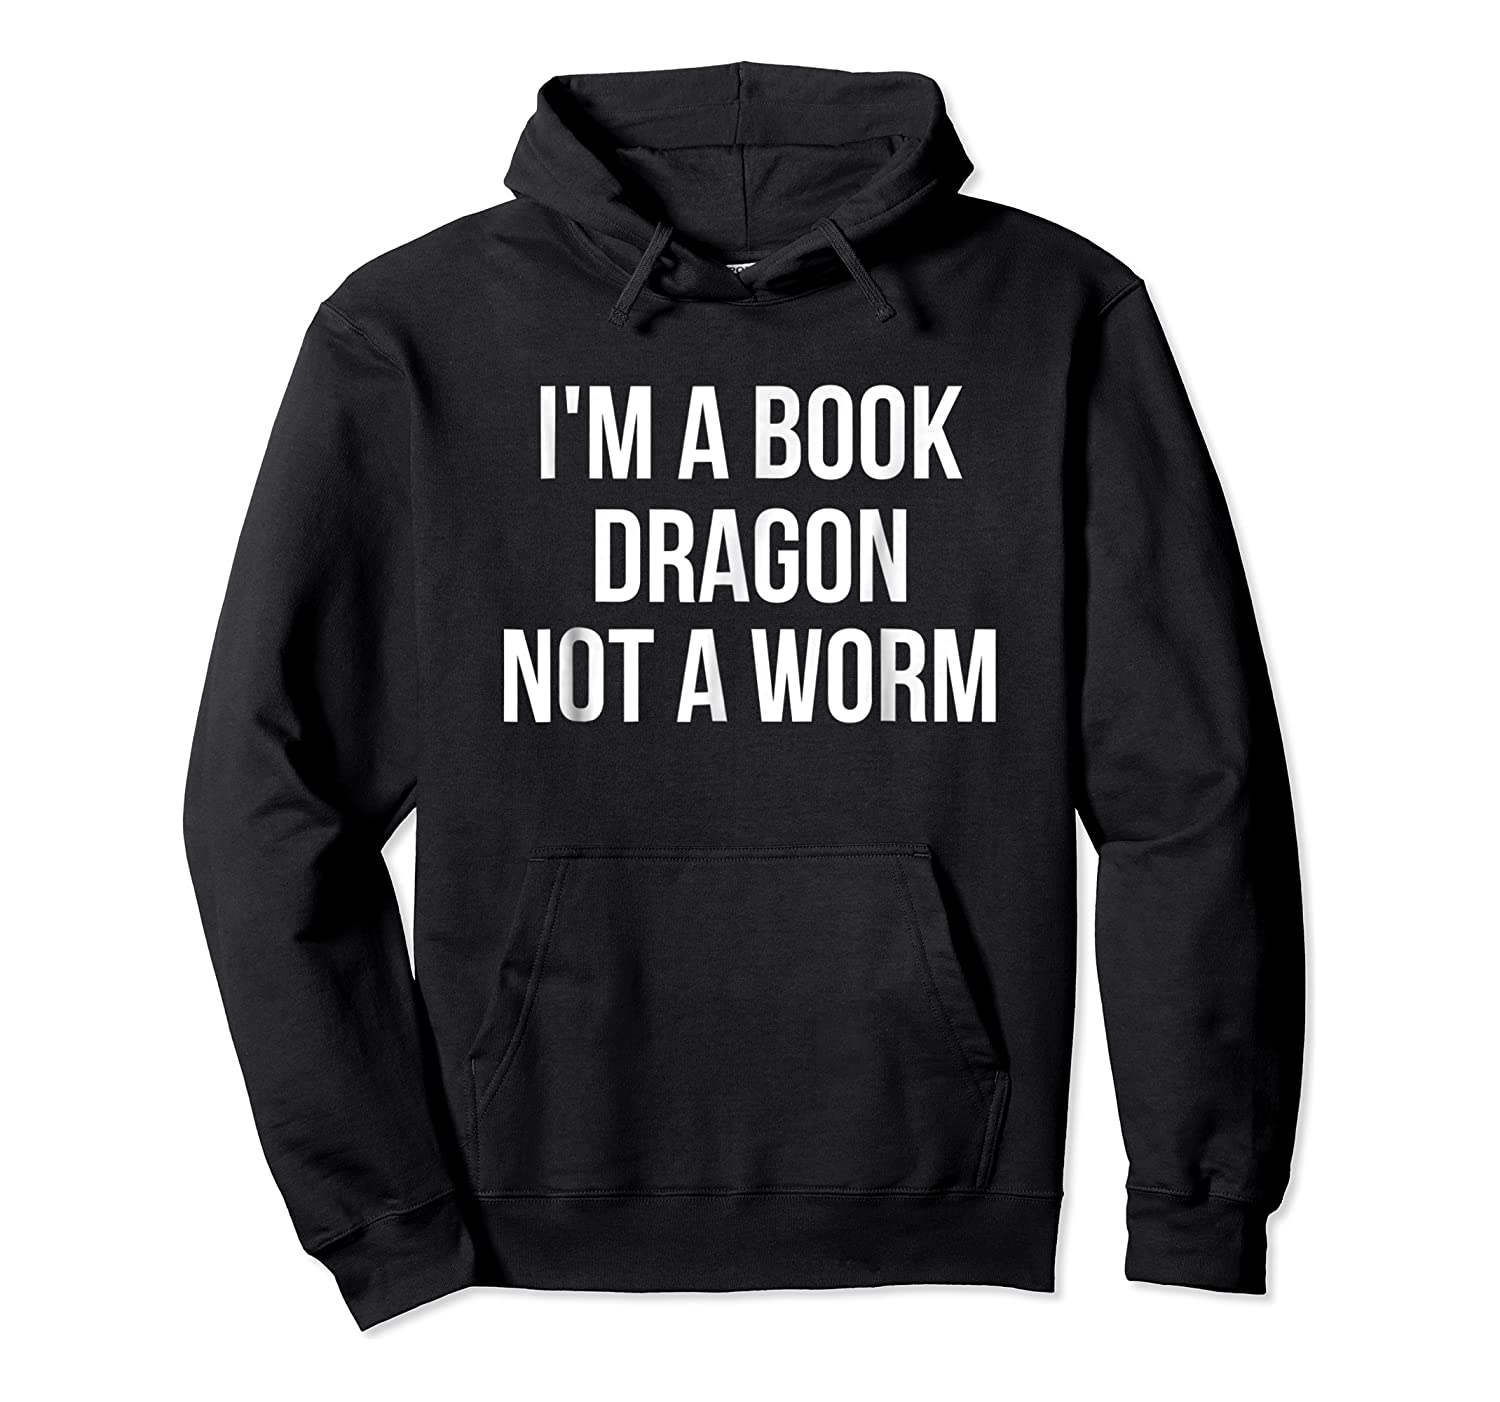 I'm A Book Dragon Not A Worm Shirts Unisex Pullover Hoodie